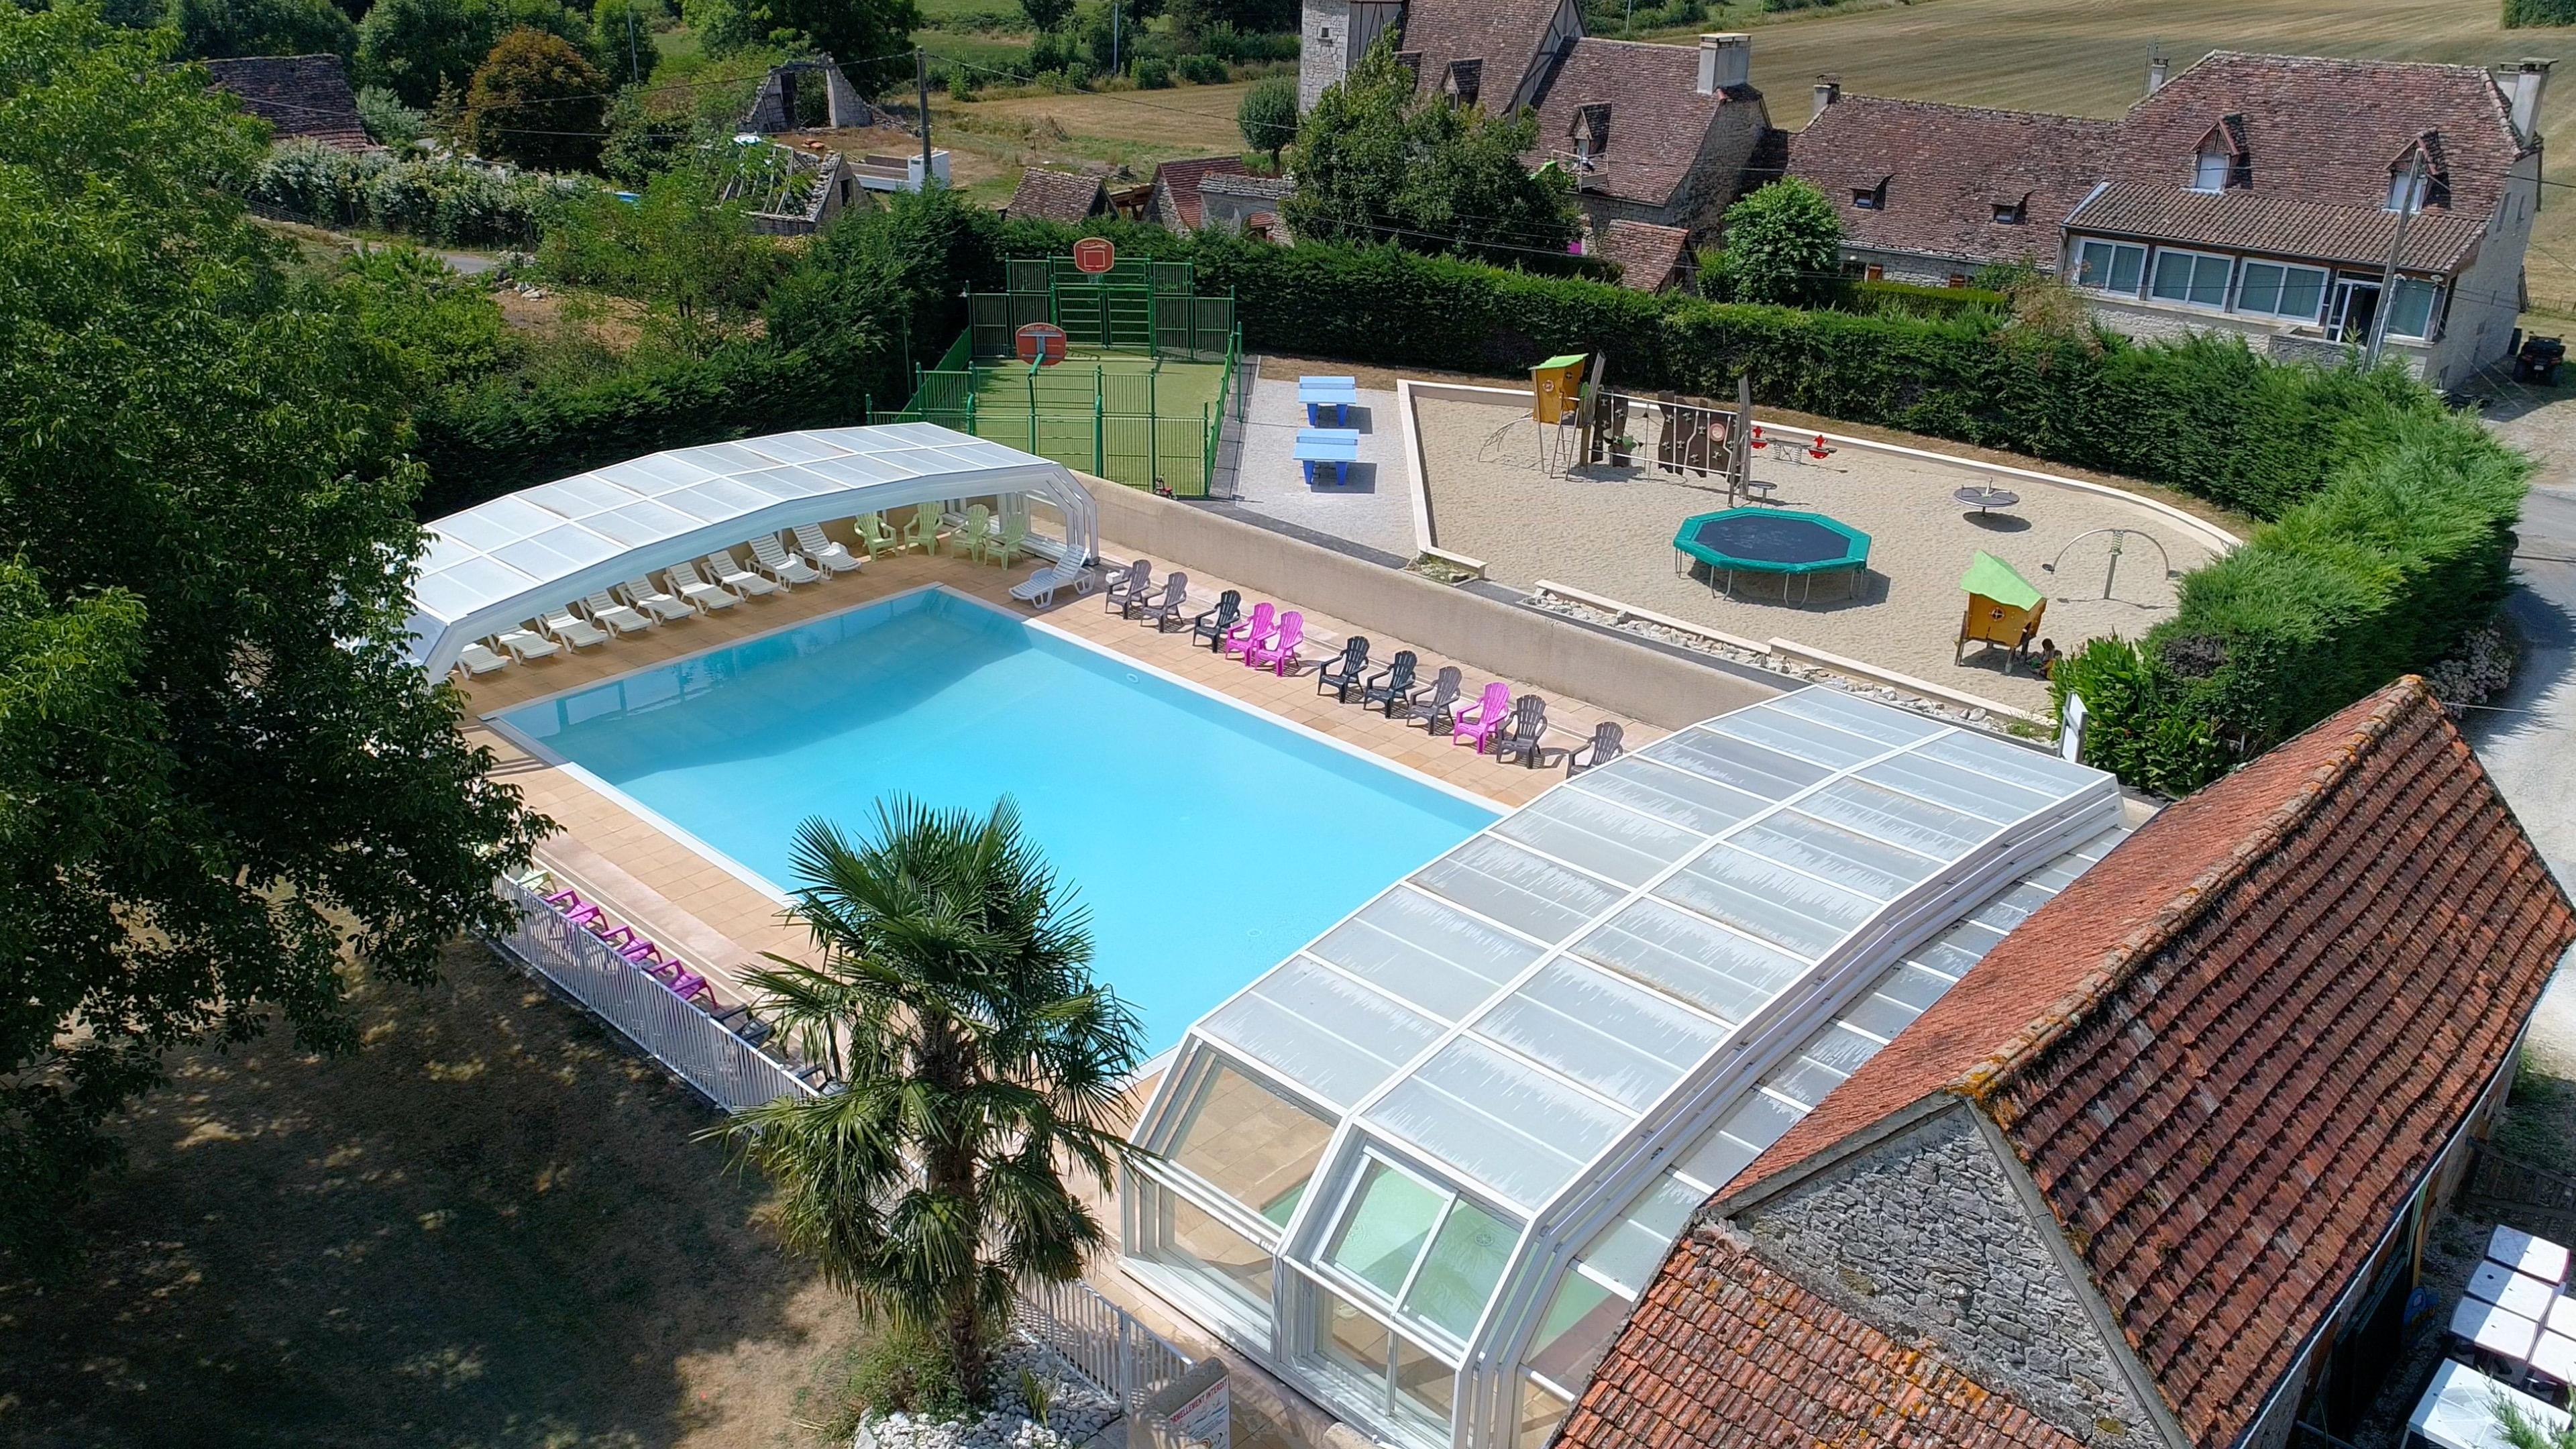 Betrieb Camping Sites Et Paysages Le Ventoulou - Thegra